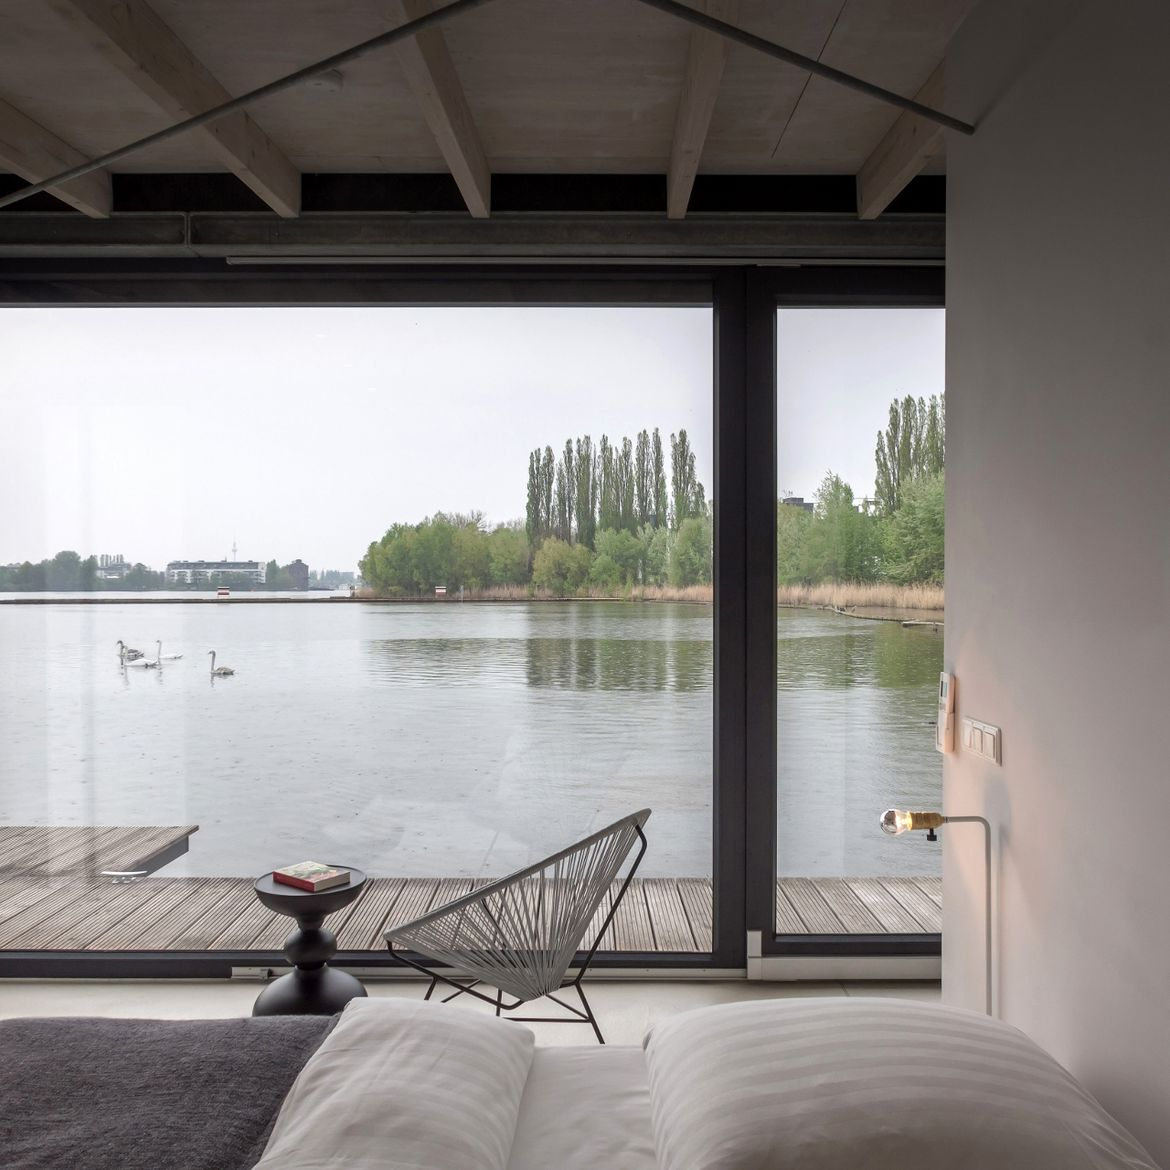 Floating house boat in Berlin with bedroom overlooking the water